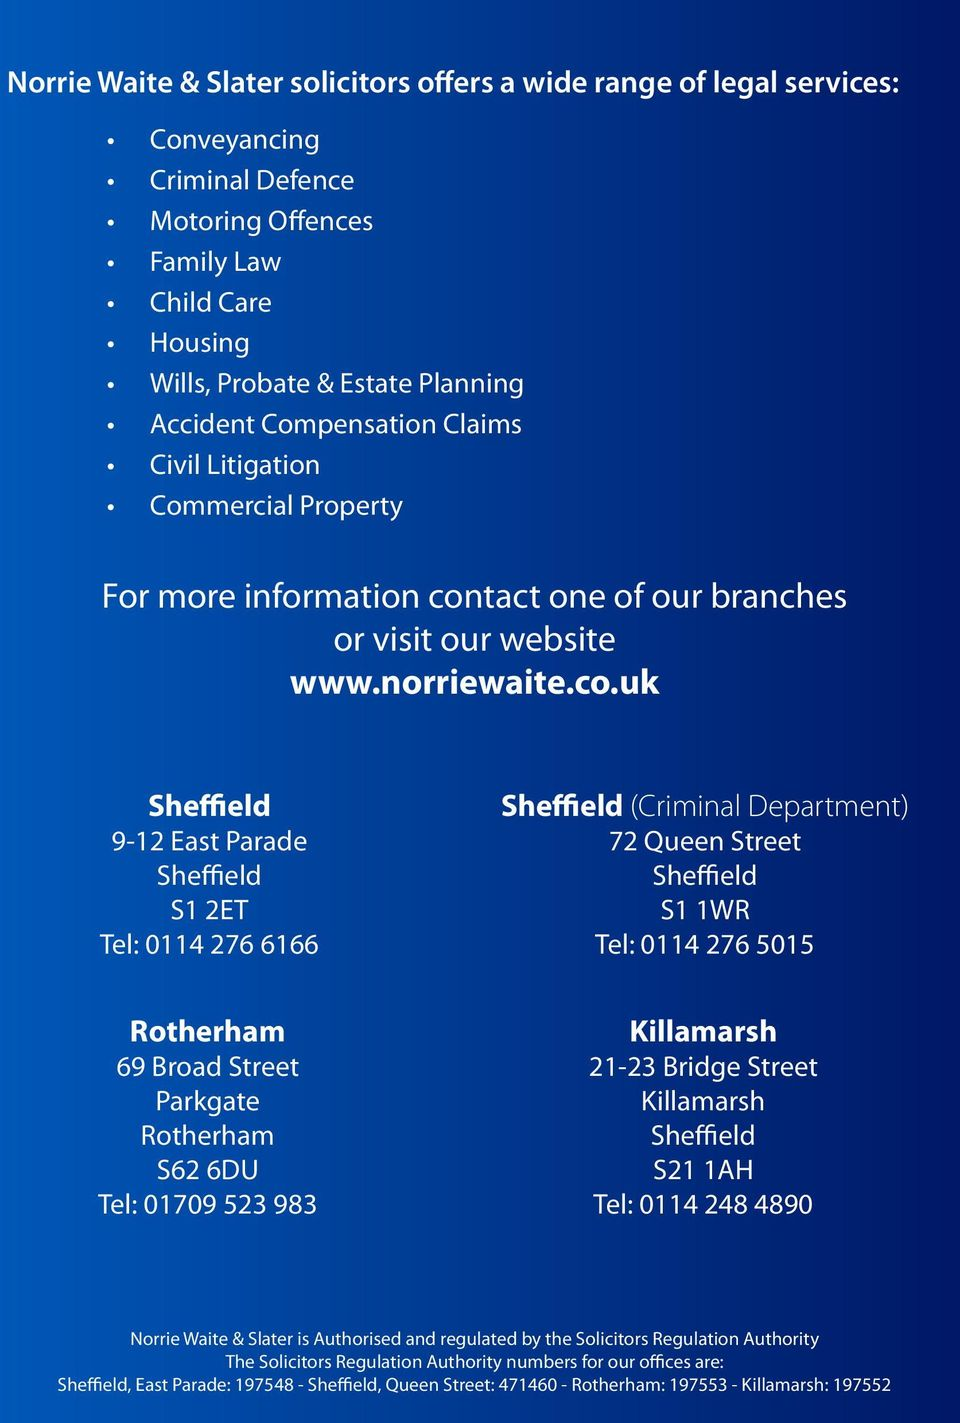 tact one of our branches or visit our website www.norriewaite.co.